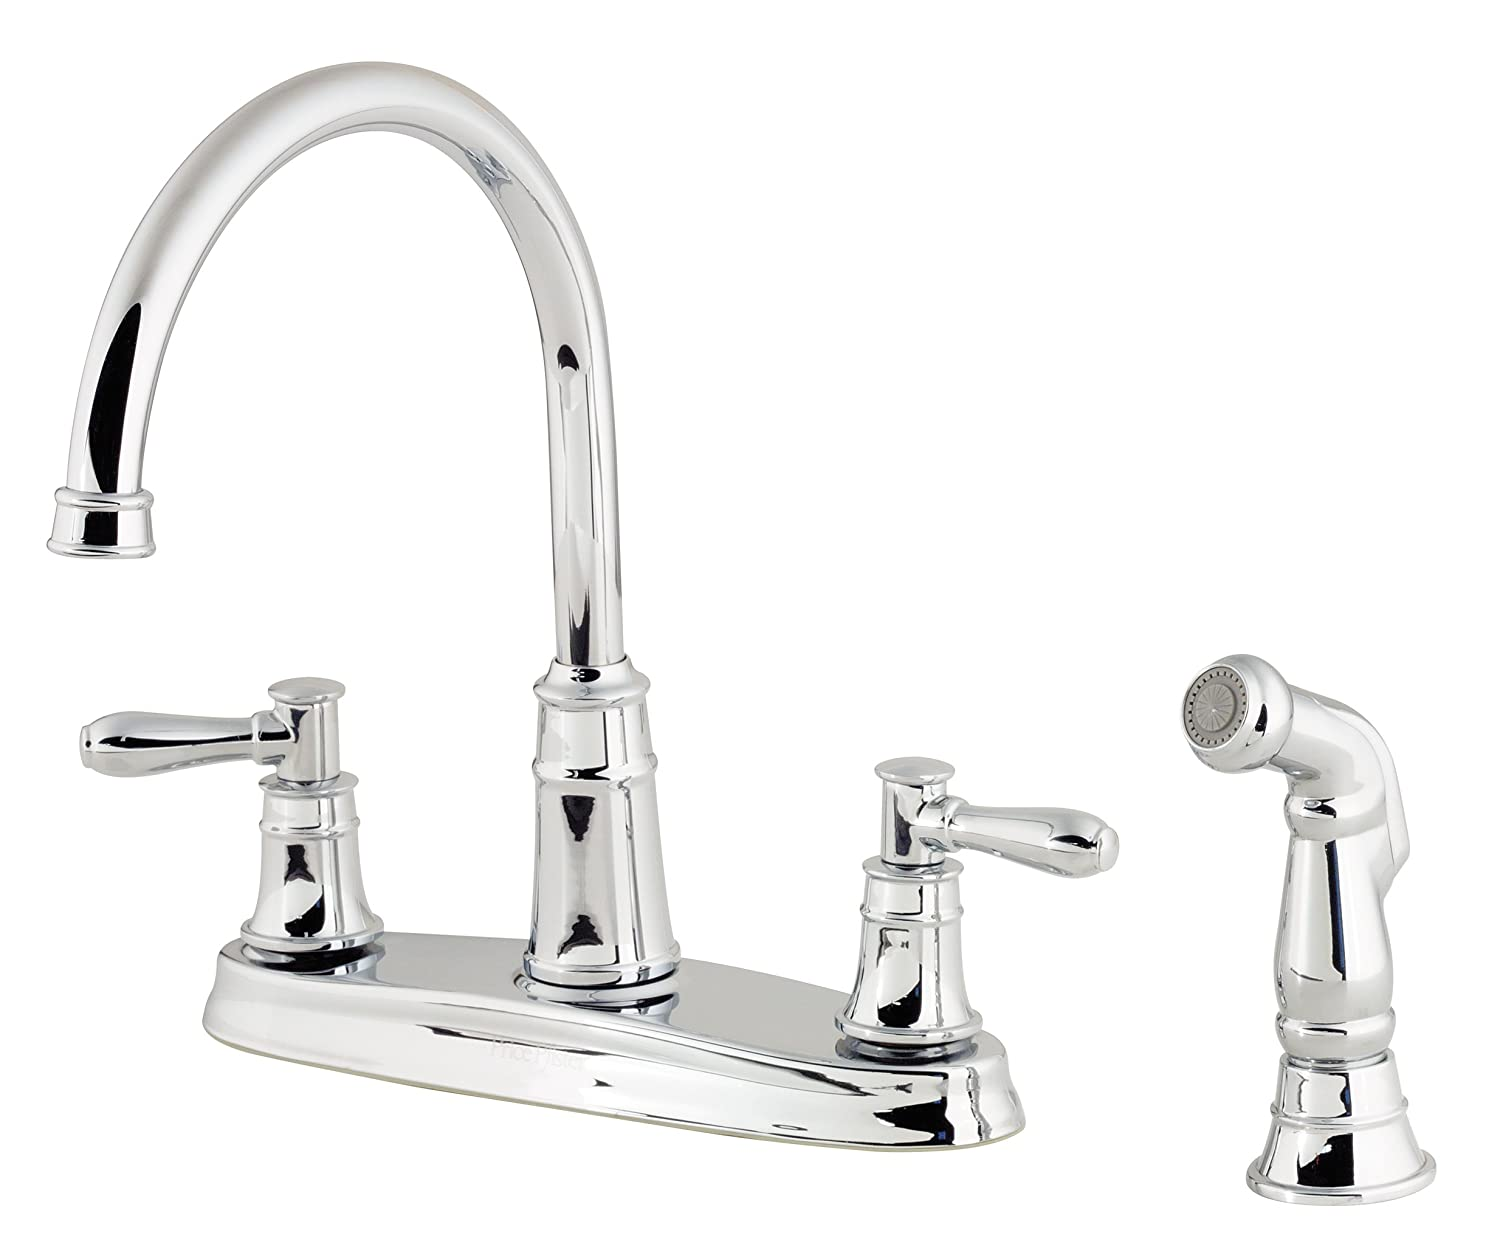 Pfister Harbor 2-Handle Kitchen Faucet with Side Spray, Polished ...